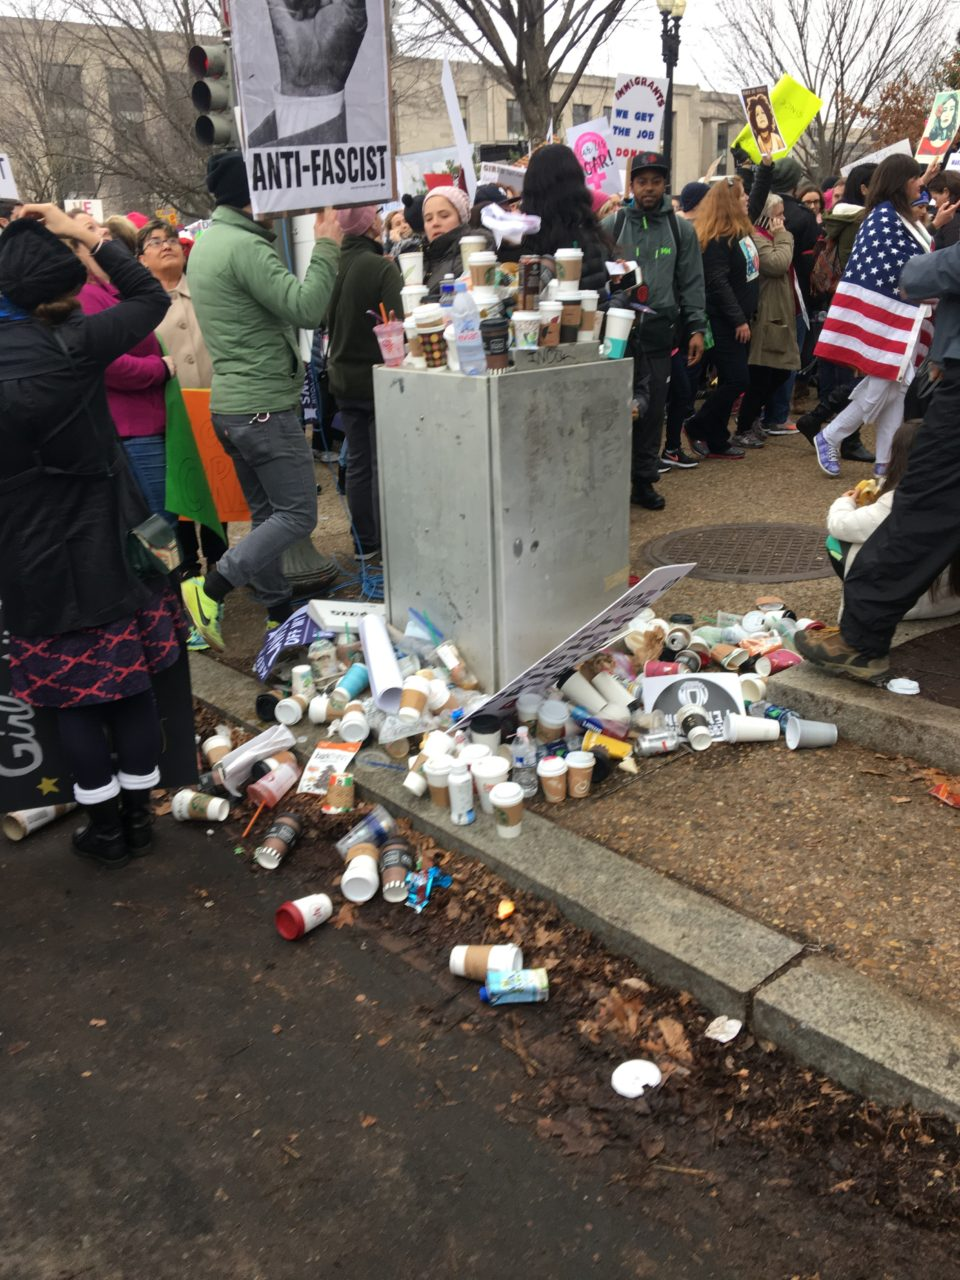 Womens-March-DC-Garbage-Raheem-Kassam